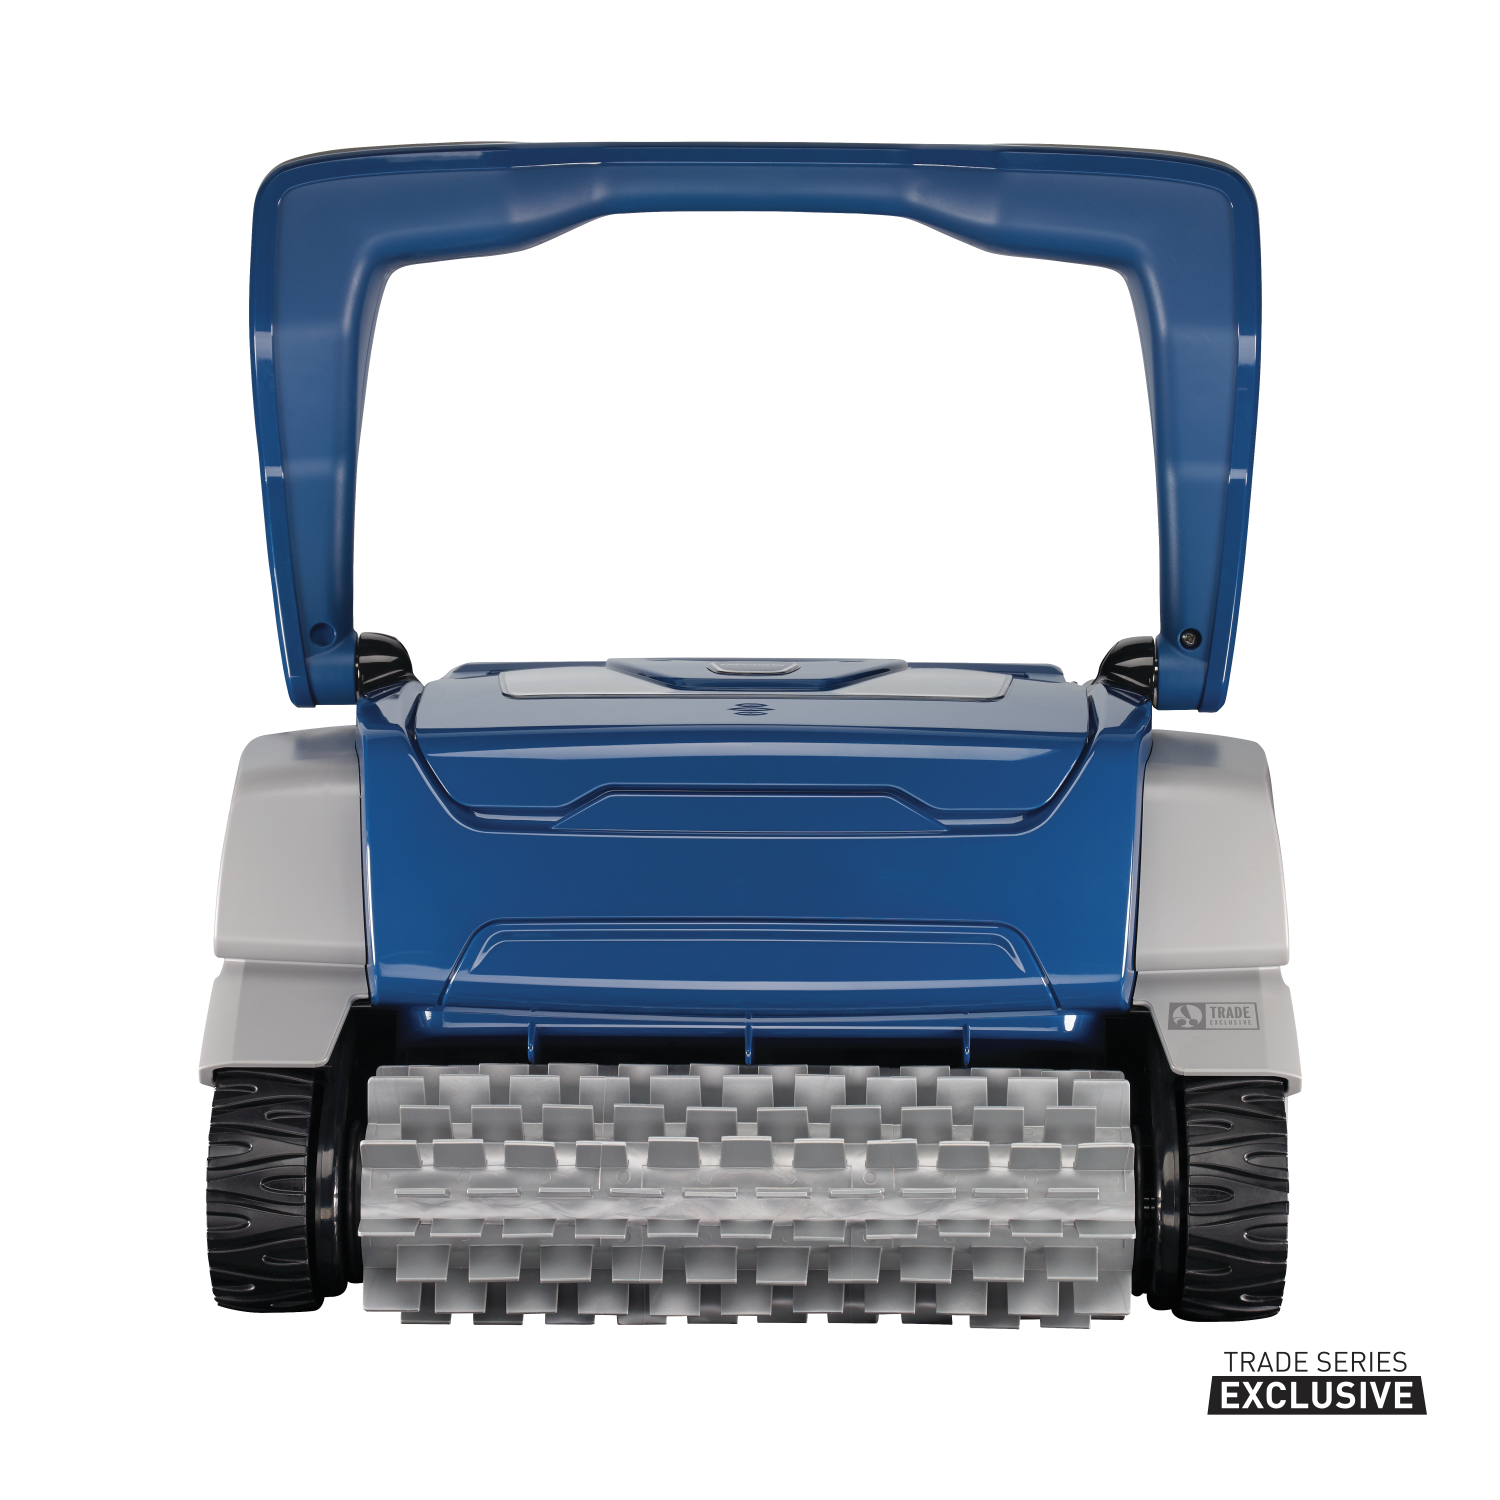 Polaris 8050 Robotic Cleaner with Caddy